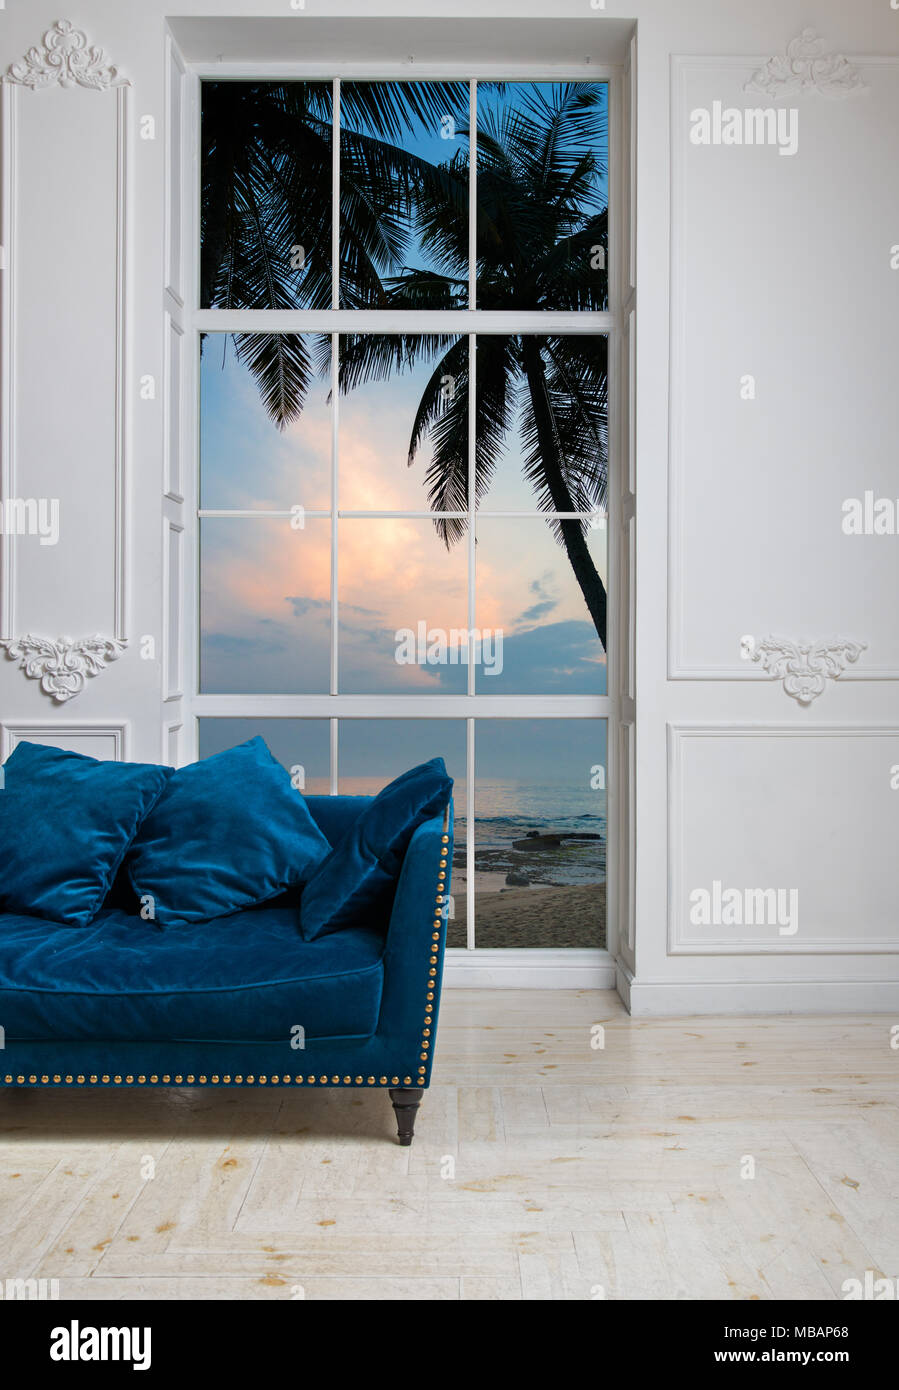 Stupendous Blue Sofa In White Classic Living Room With View Of Tropical Bralicious Painted Fabric Chair Ideas Braliciousco